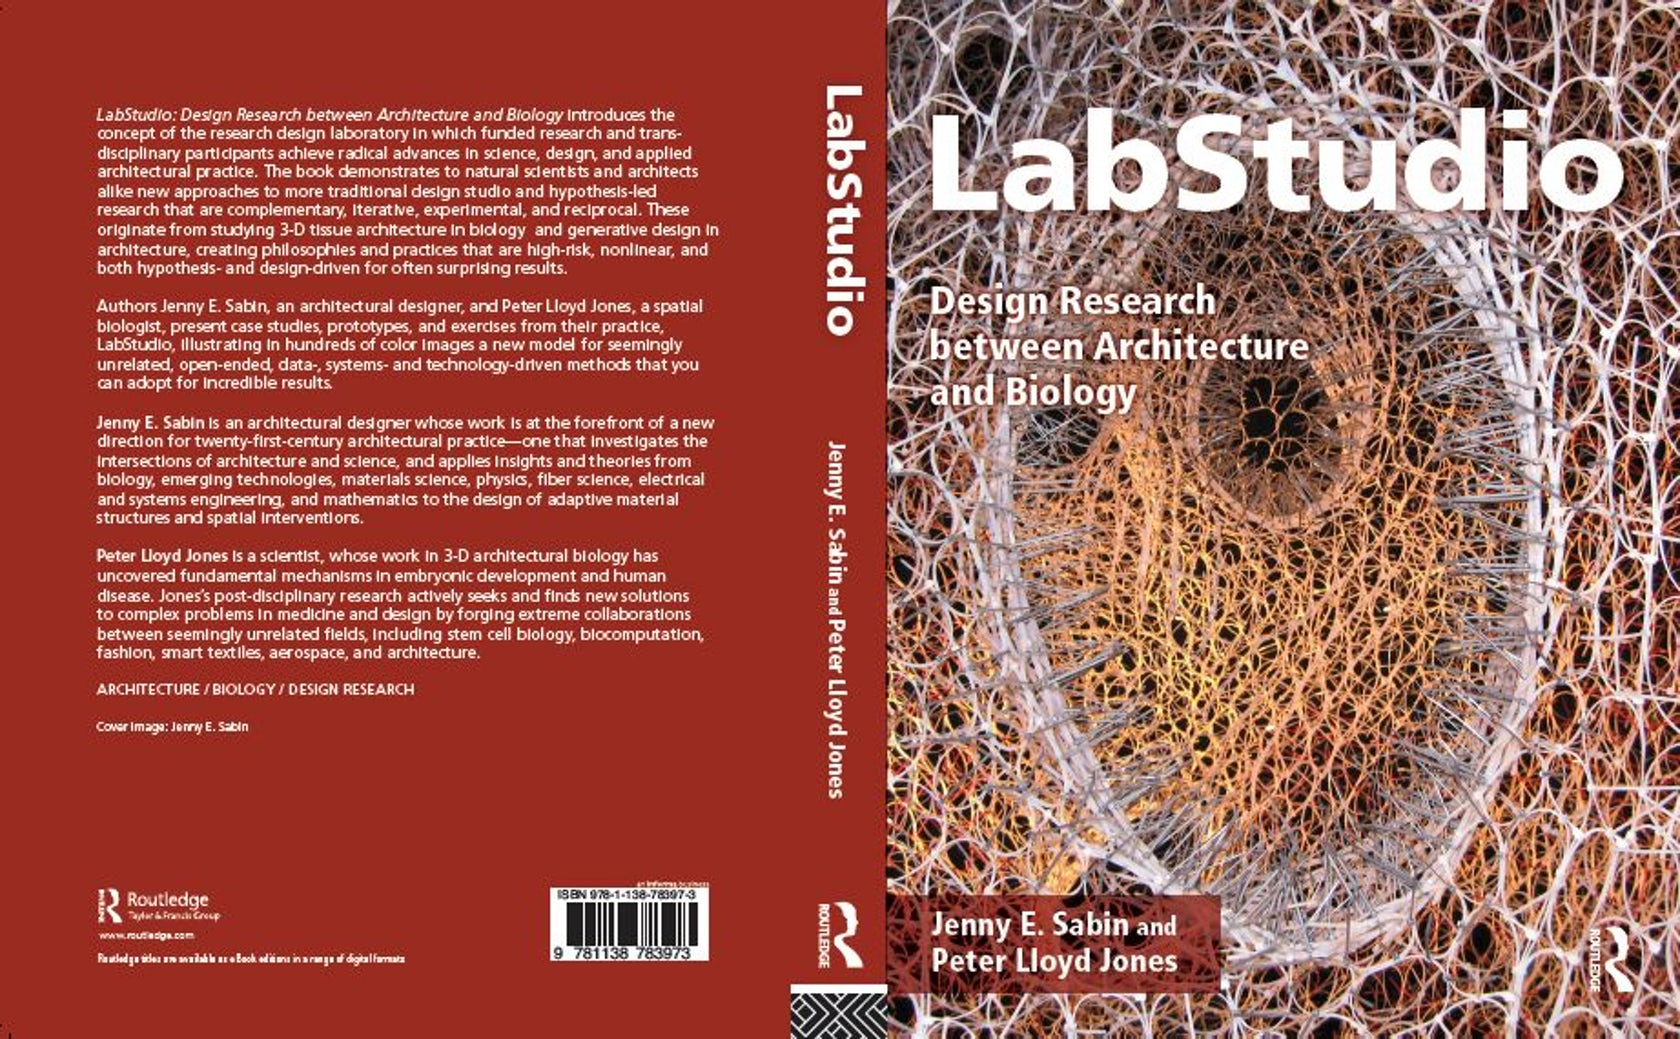 Labstudio Design Research Between Architecture Biology On